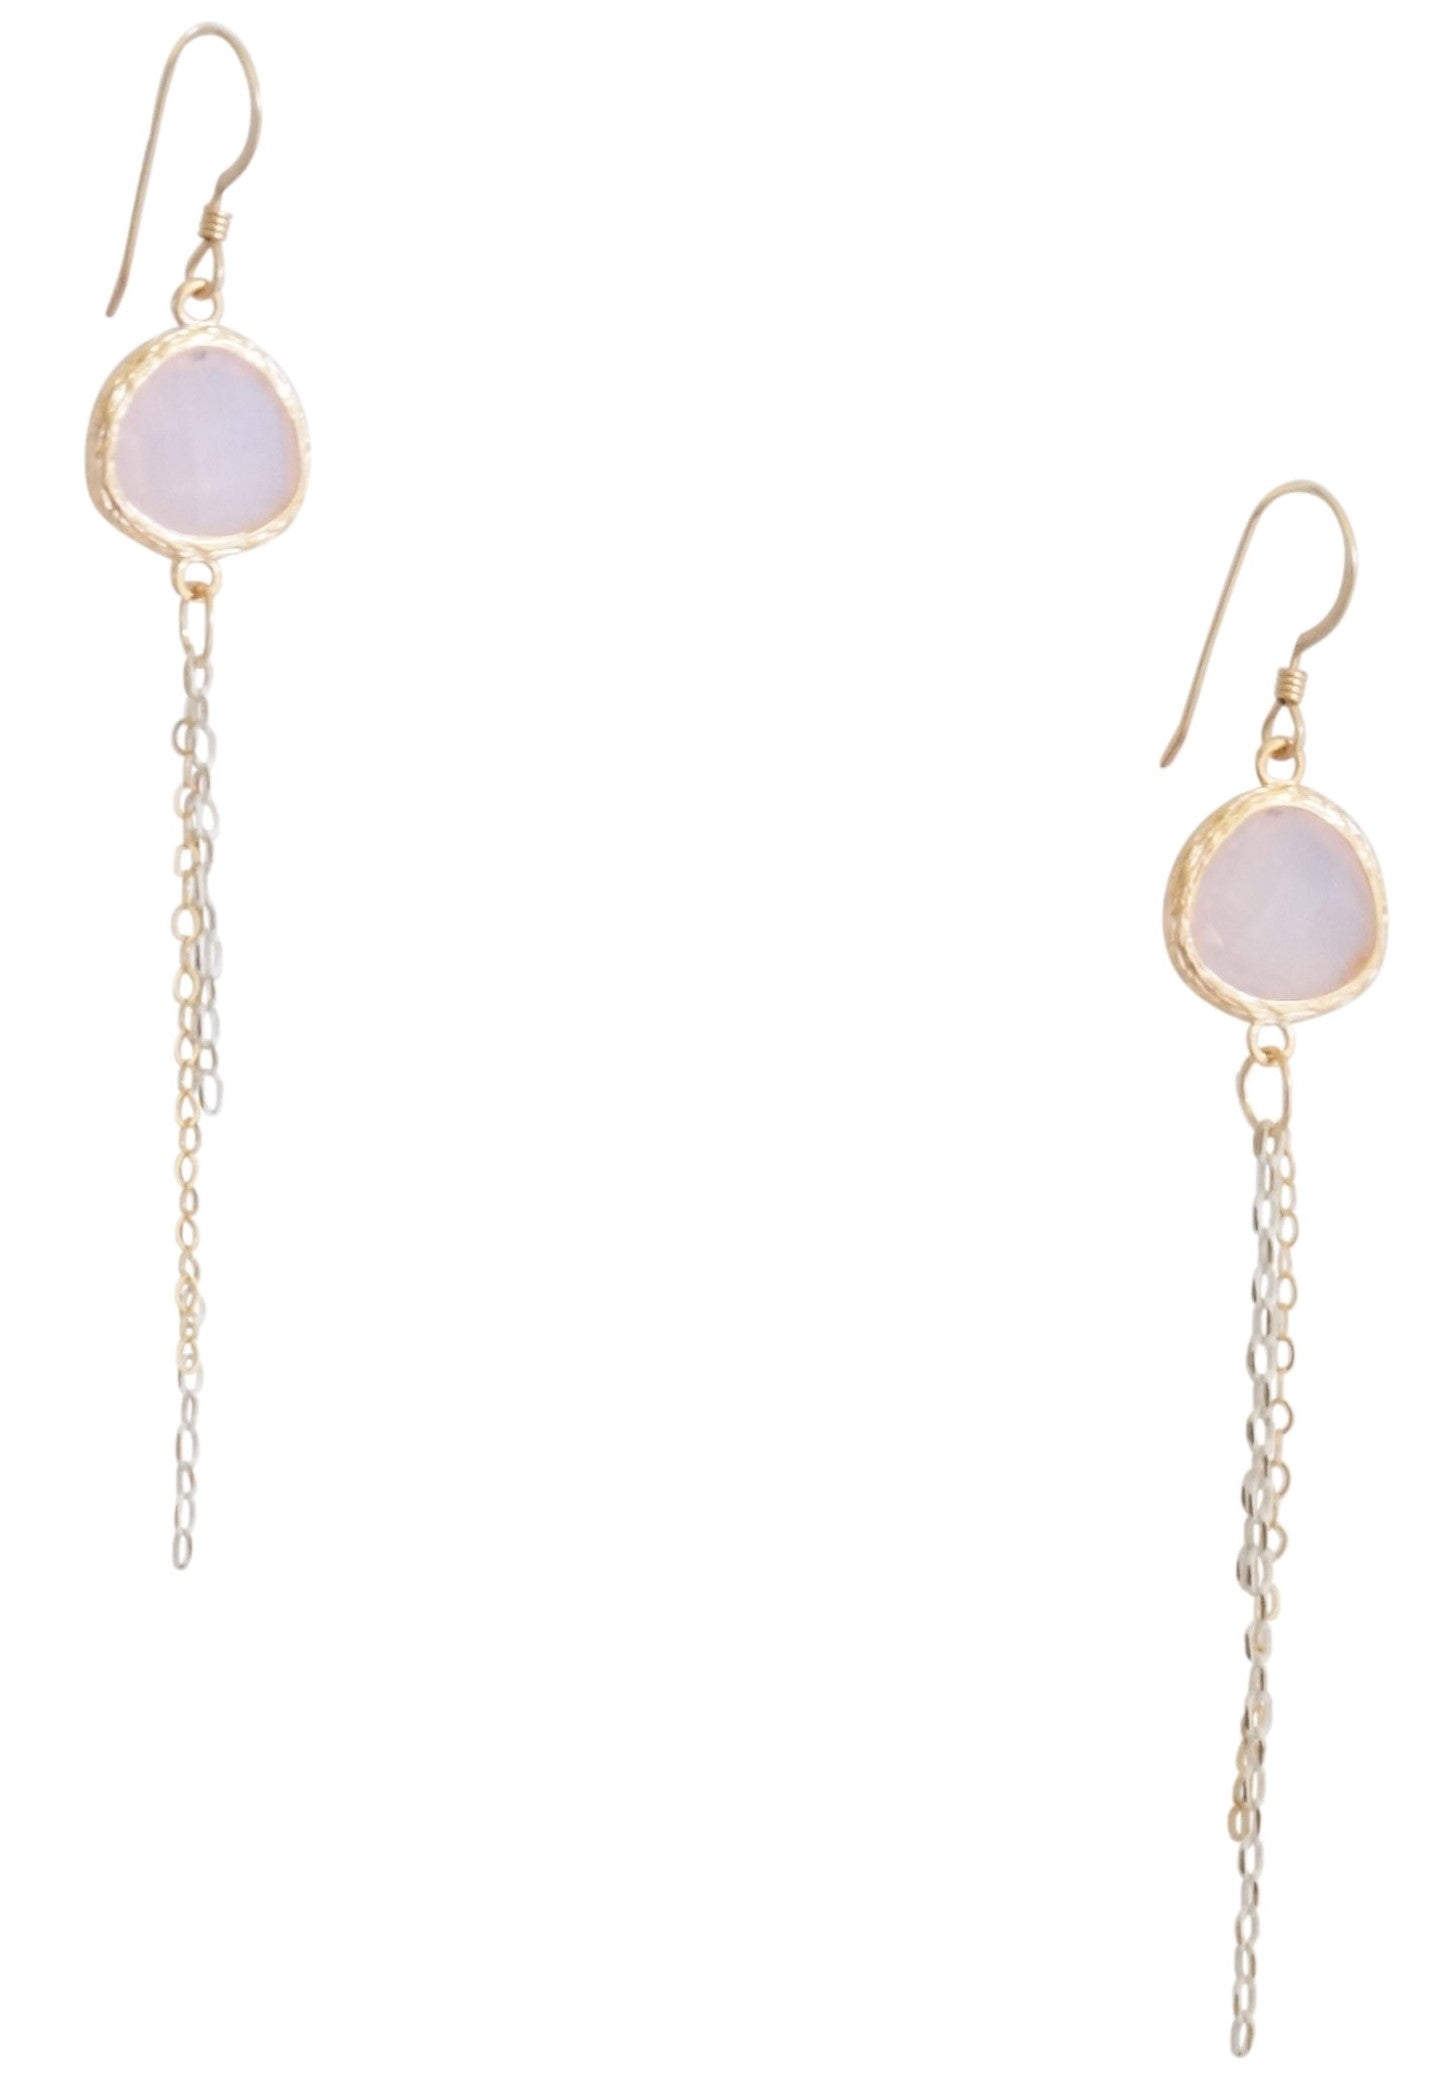 Love Earrings - Carolyn Hearn Designs